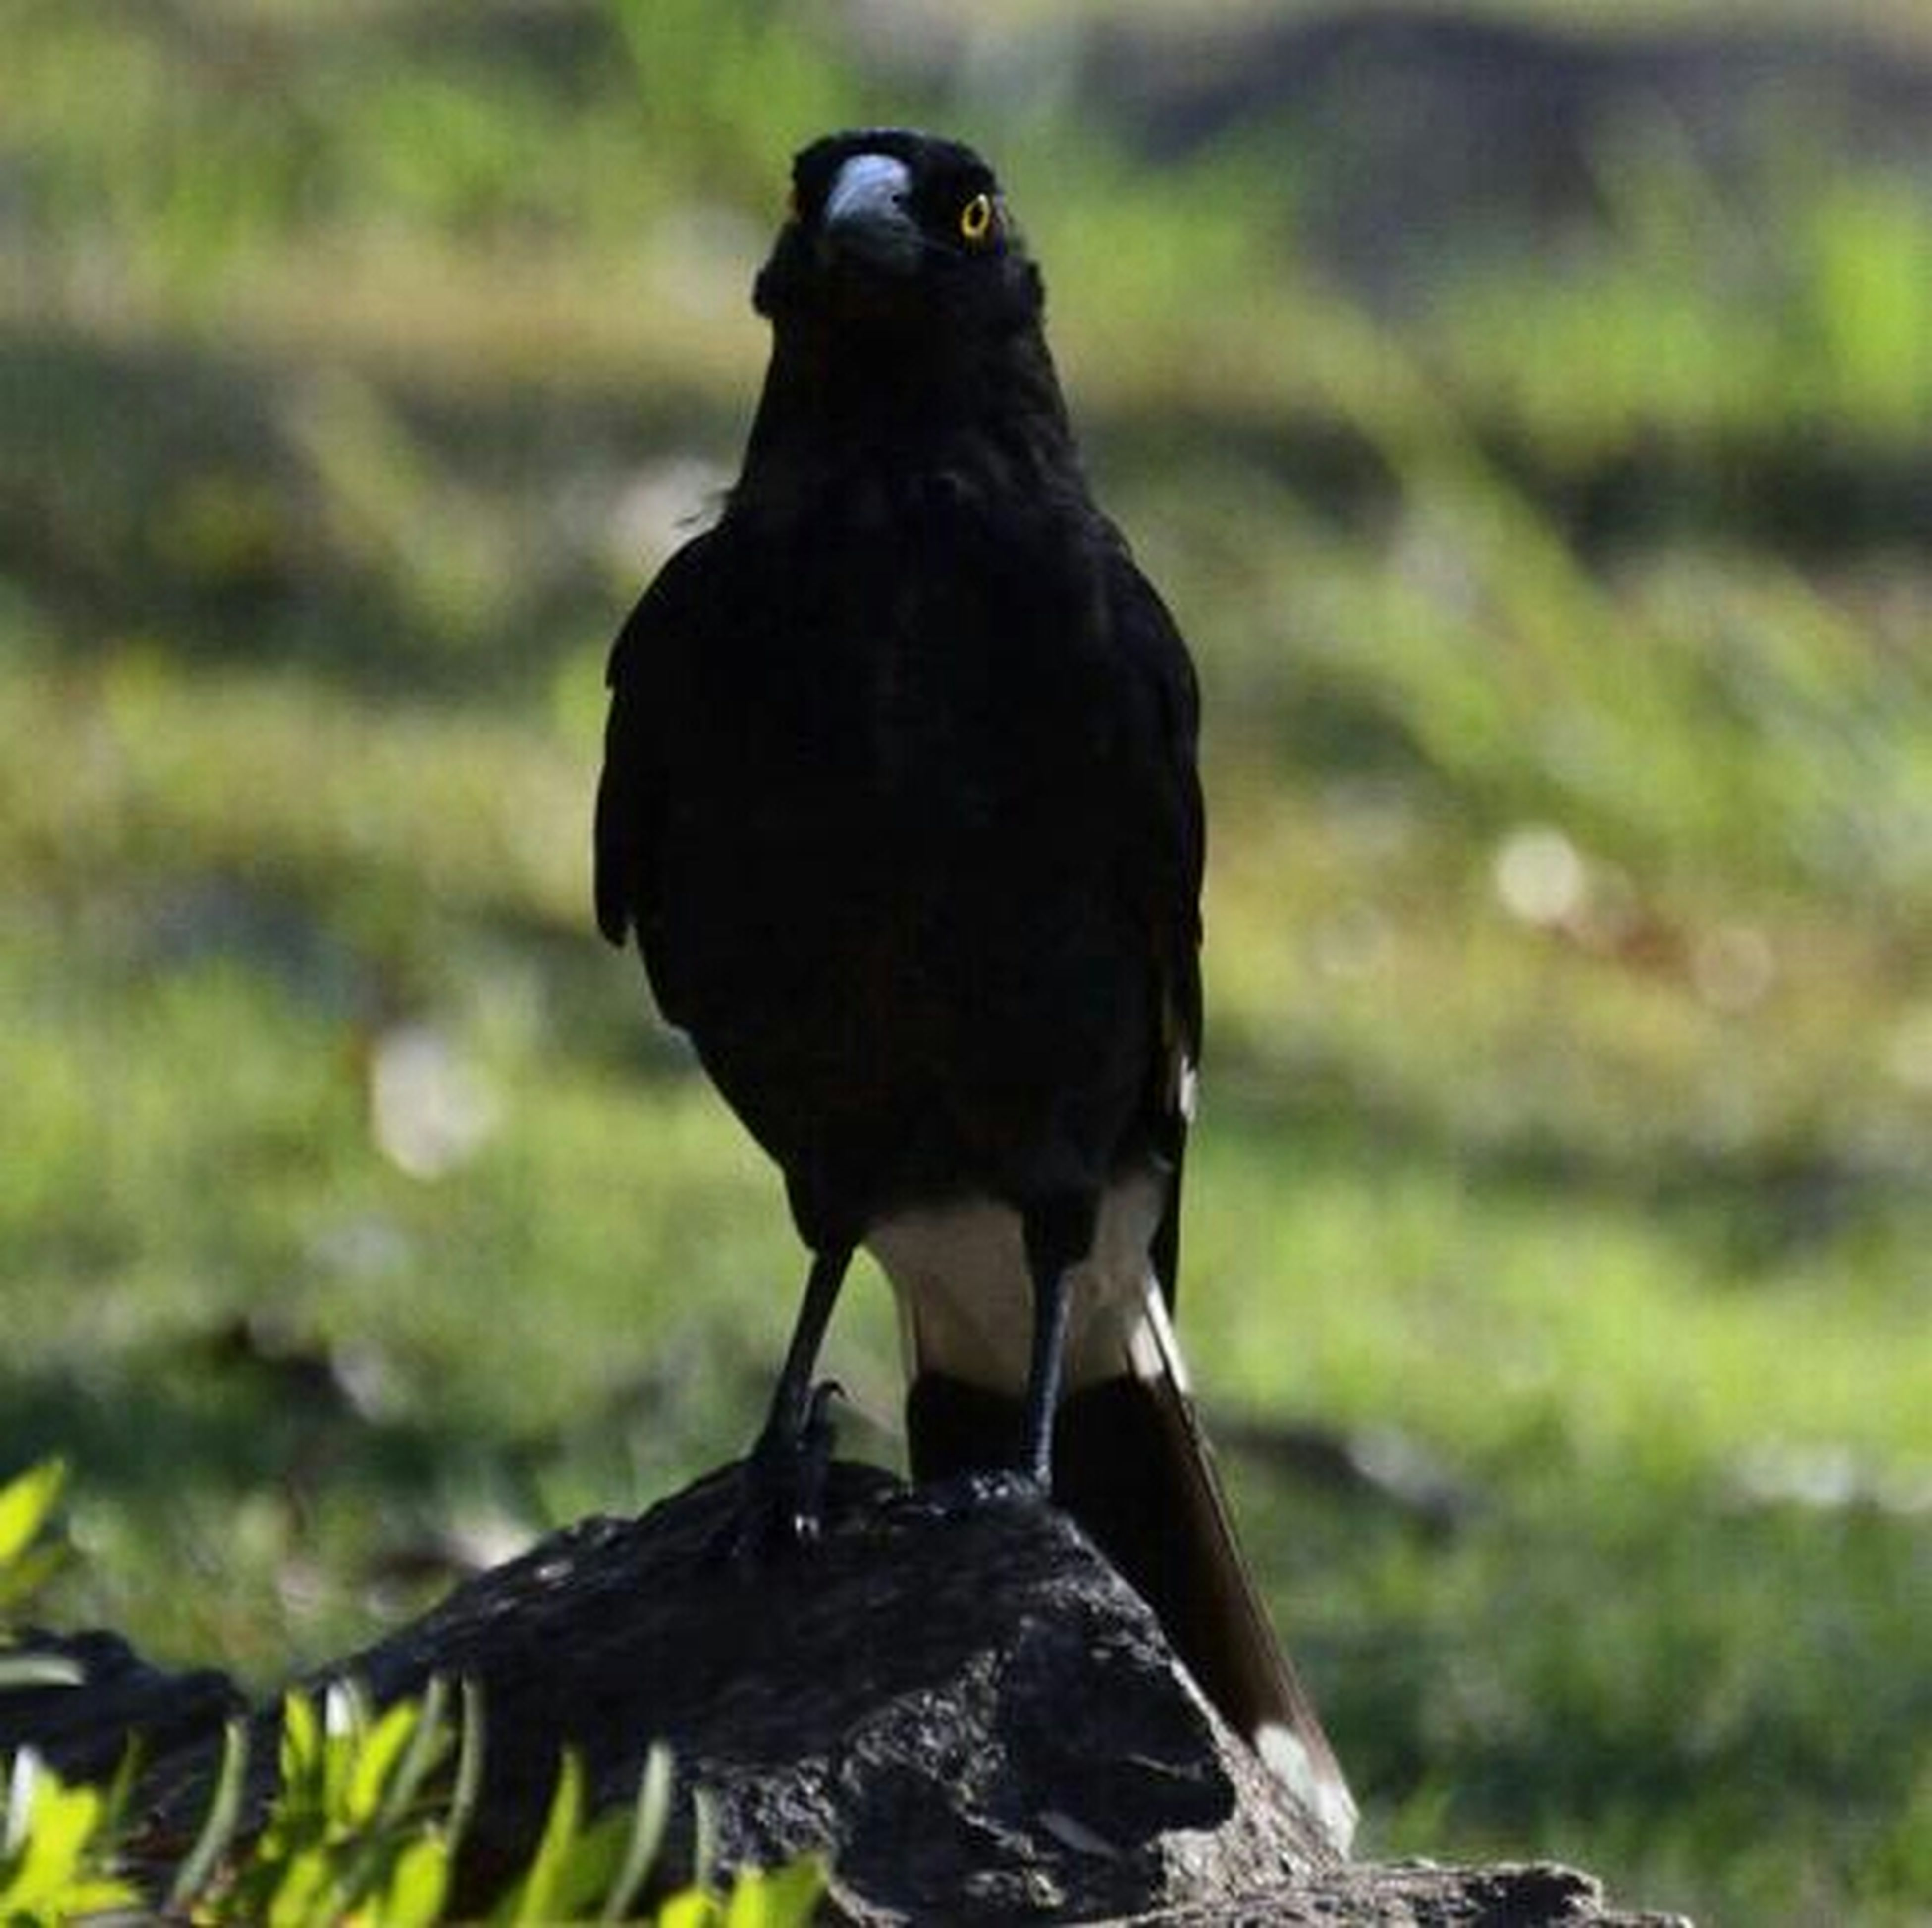 animal themes, animals in the wild, one animal, wildlife, bird, focus on foreground, close-up, black color, full length, perching, nature, side view, outdoors, day, no people, looking away, zoology, selective focus, field, beak